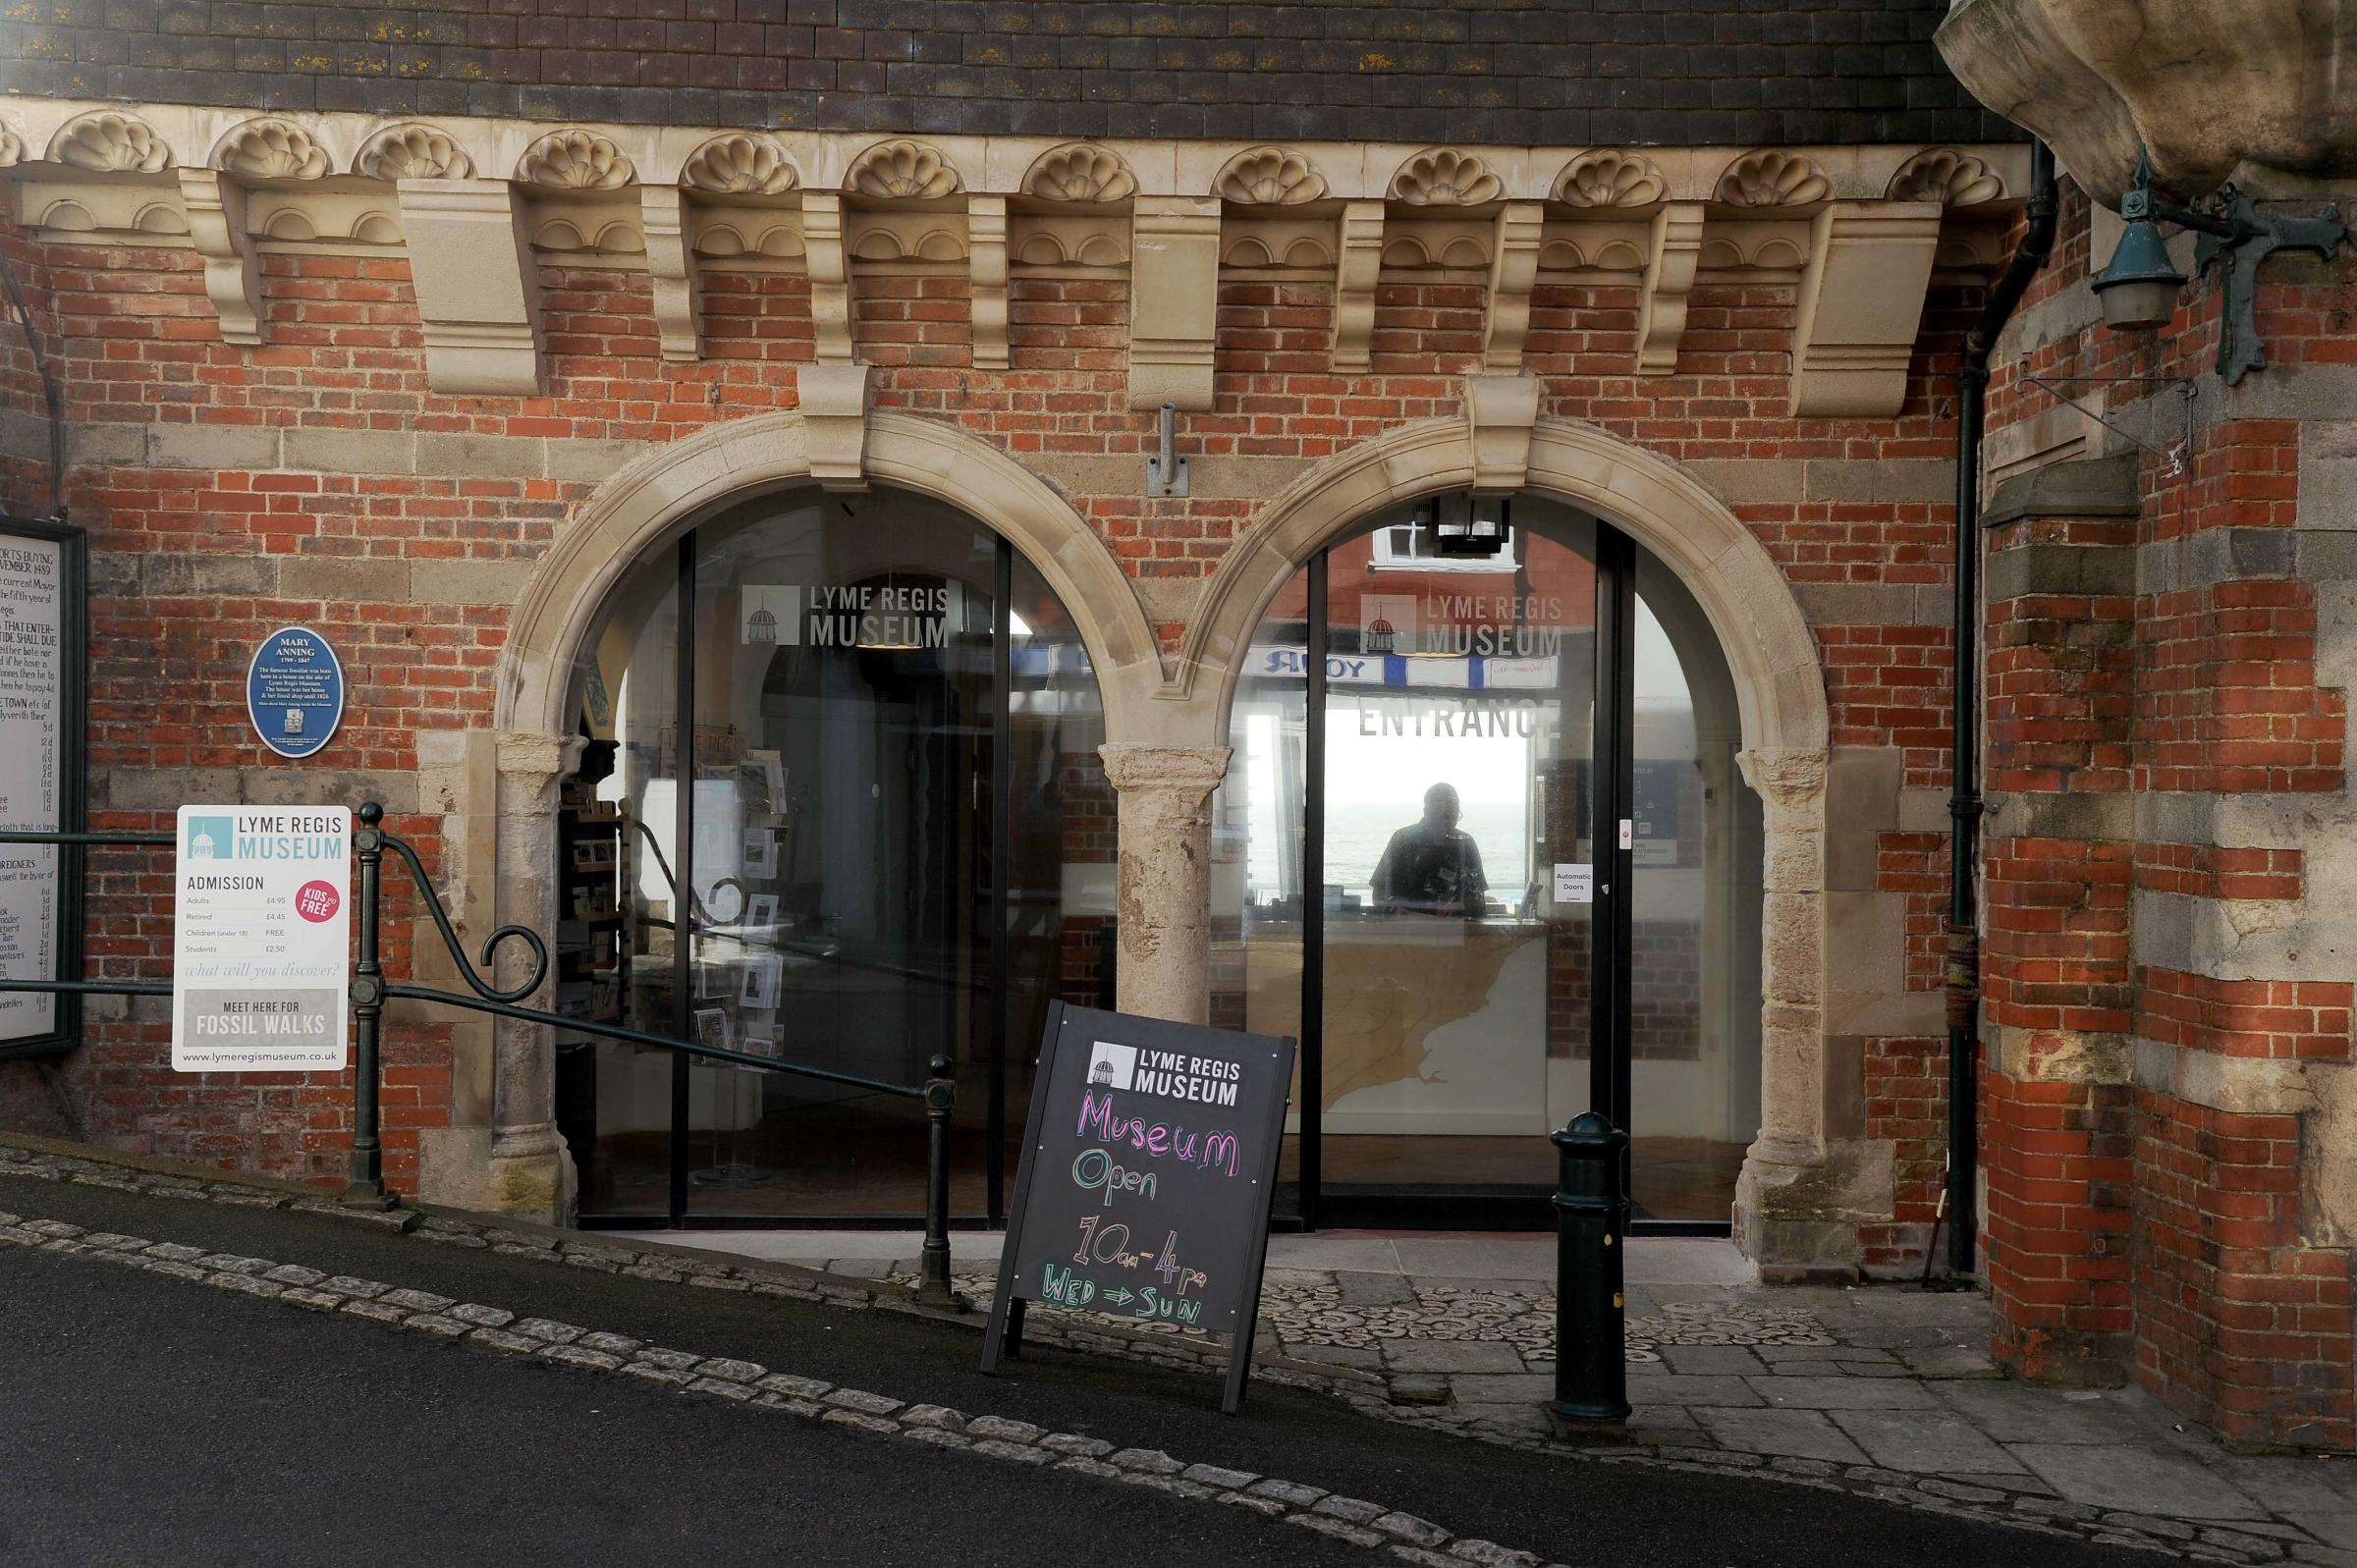 Lyme Regis Museum has teamed up with Jurassic Coast's poet-in-residence